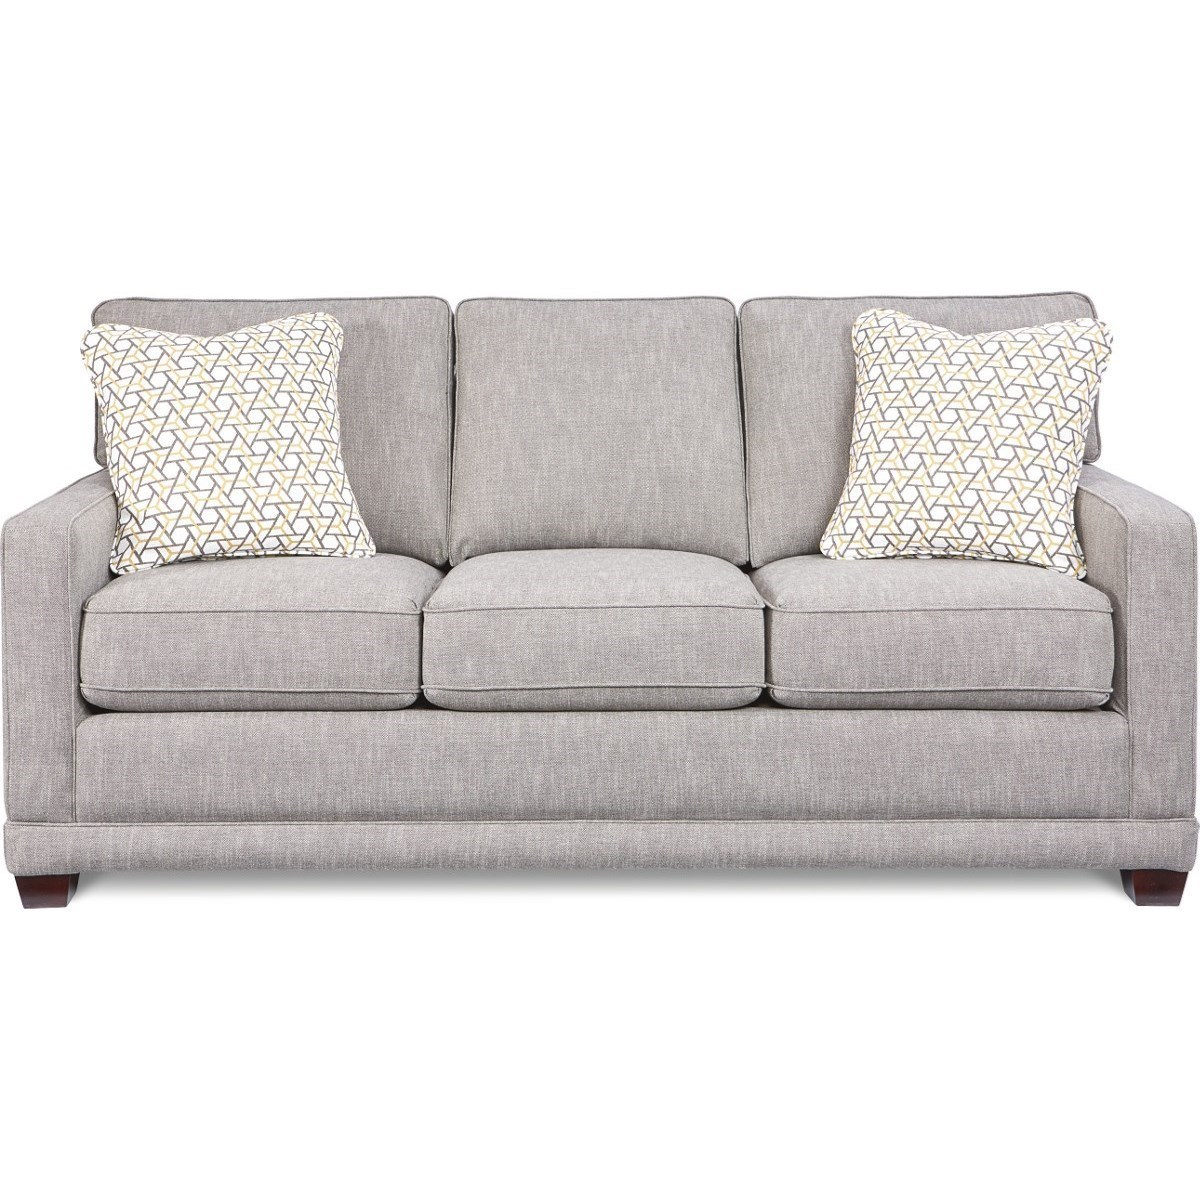 La Z Boy Kennedy Transitional Sofa With Wood Legs And Welt Cord